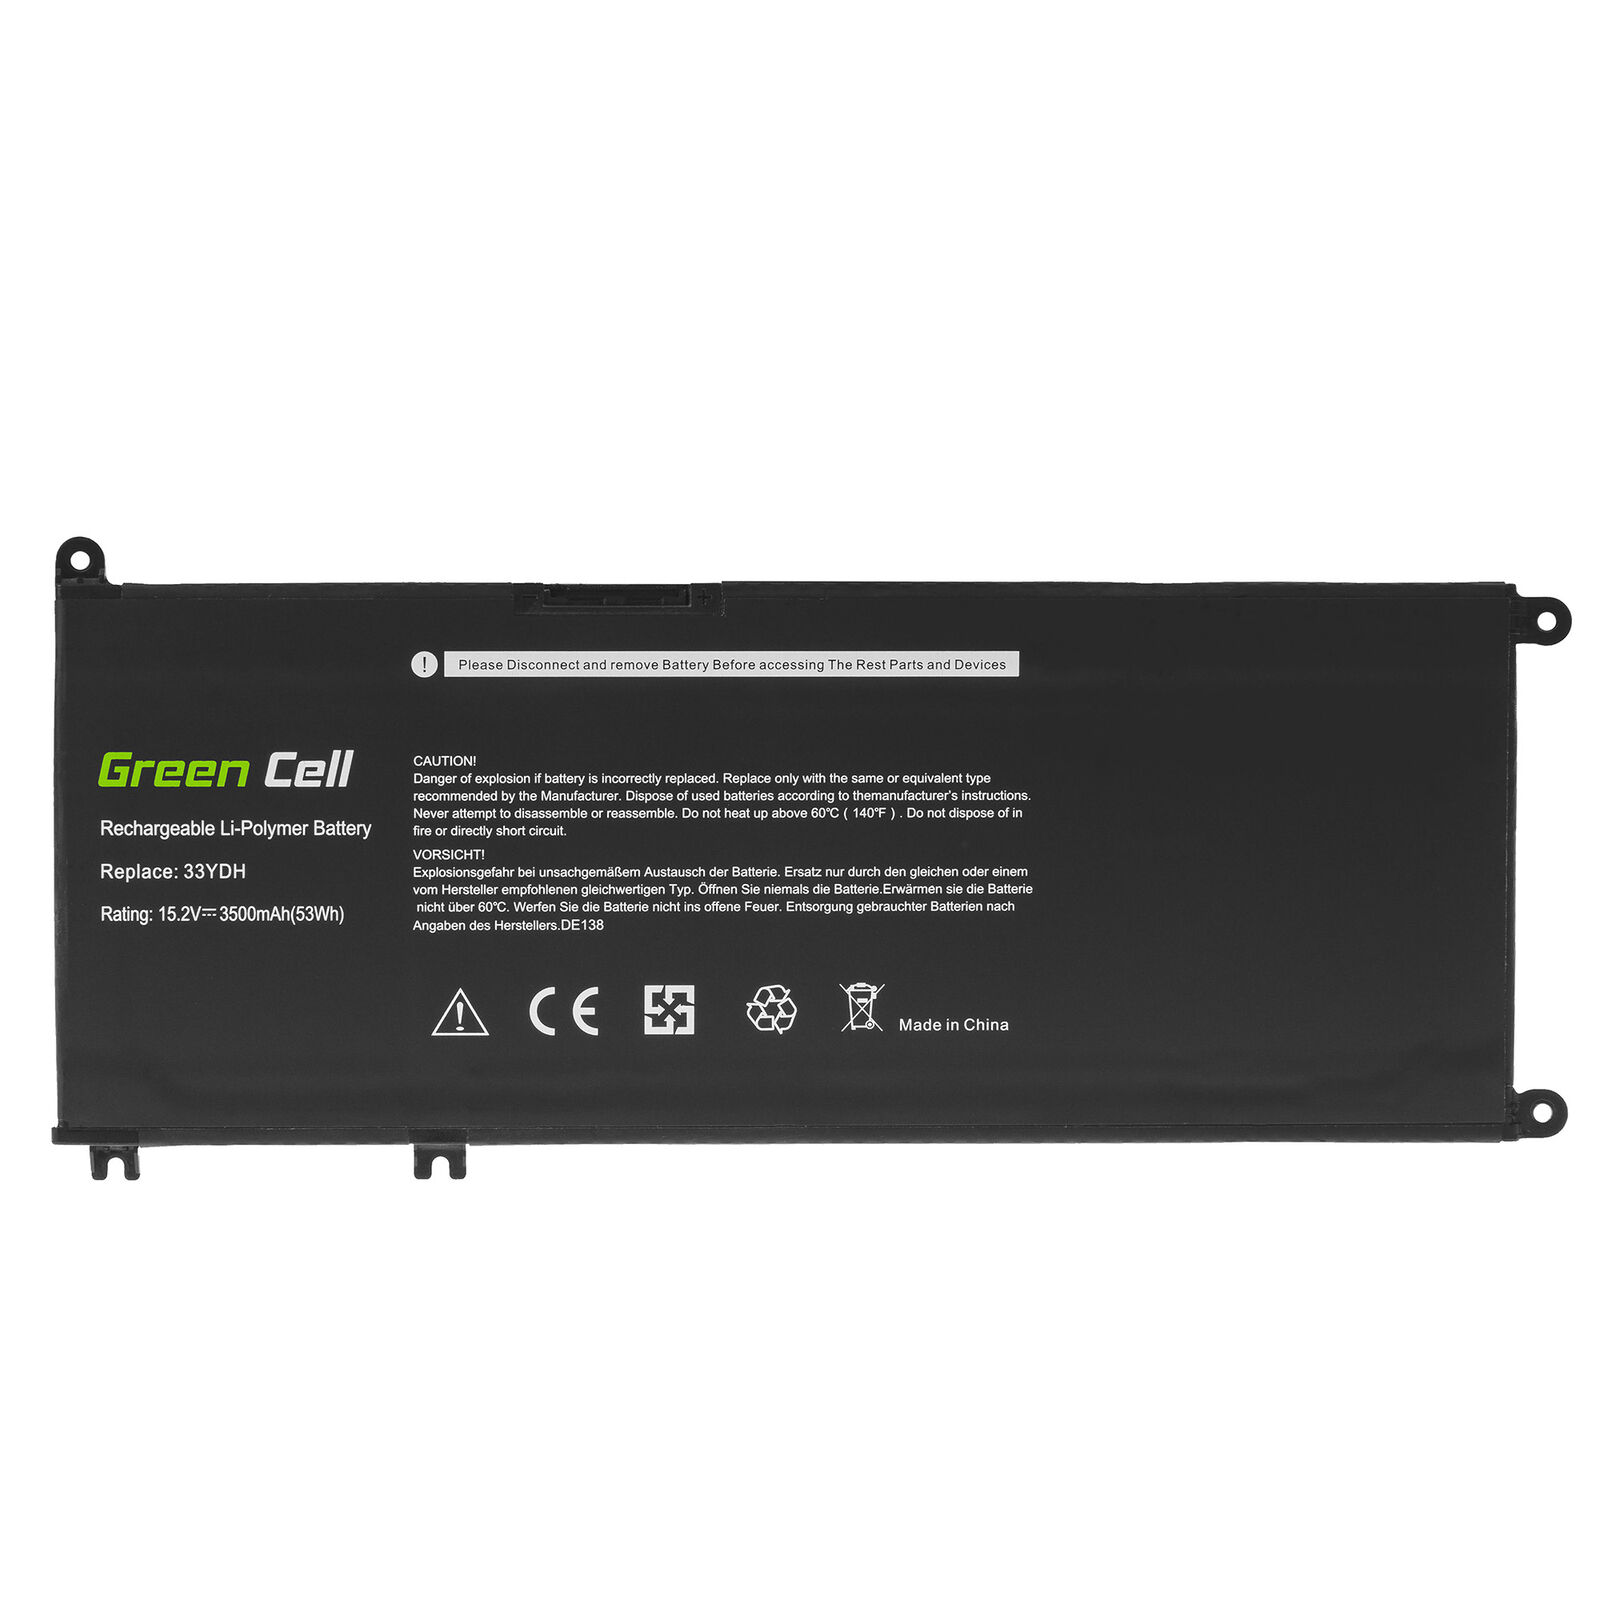 Dell Inspiron 7570 7573 7577 7586 7773 7778 7779 7786 99NF2 33YDH W7NKD compatible battery